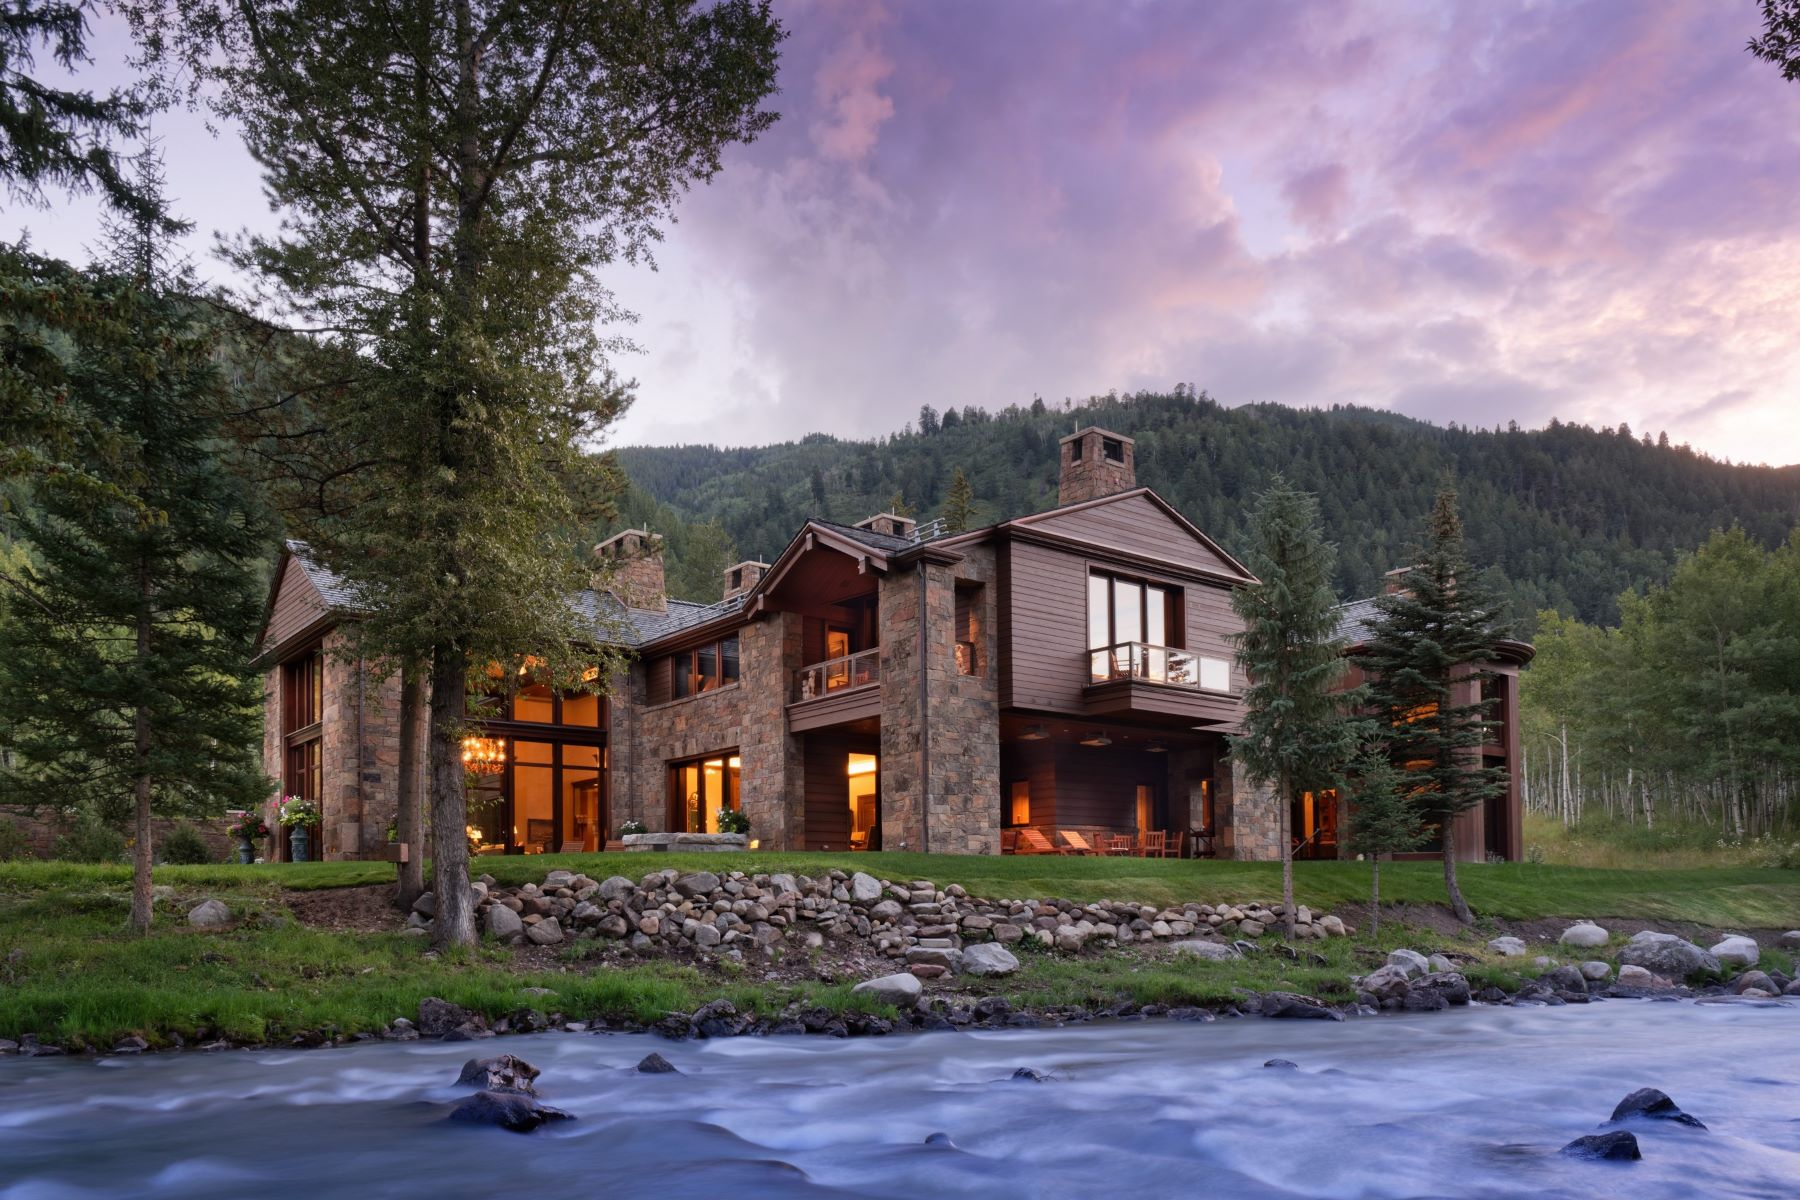 Single Family Homes for Sale at Talk About a Water Feature! 41 Popcorn Lane, Aspen, Colorado 81611 United States